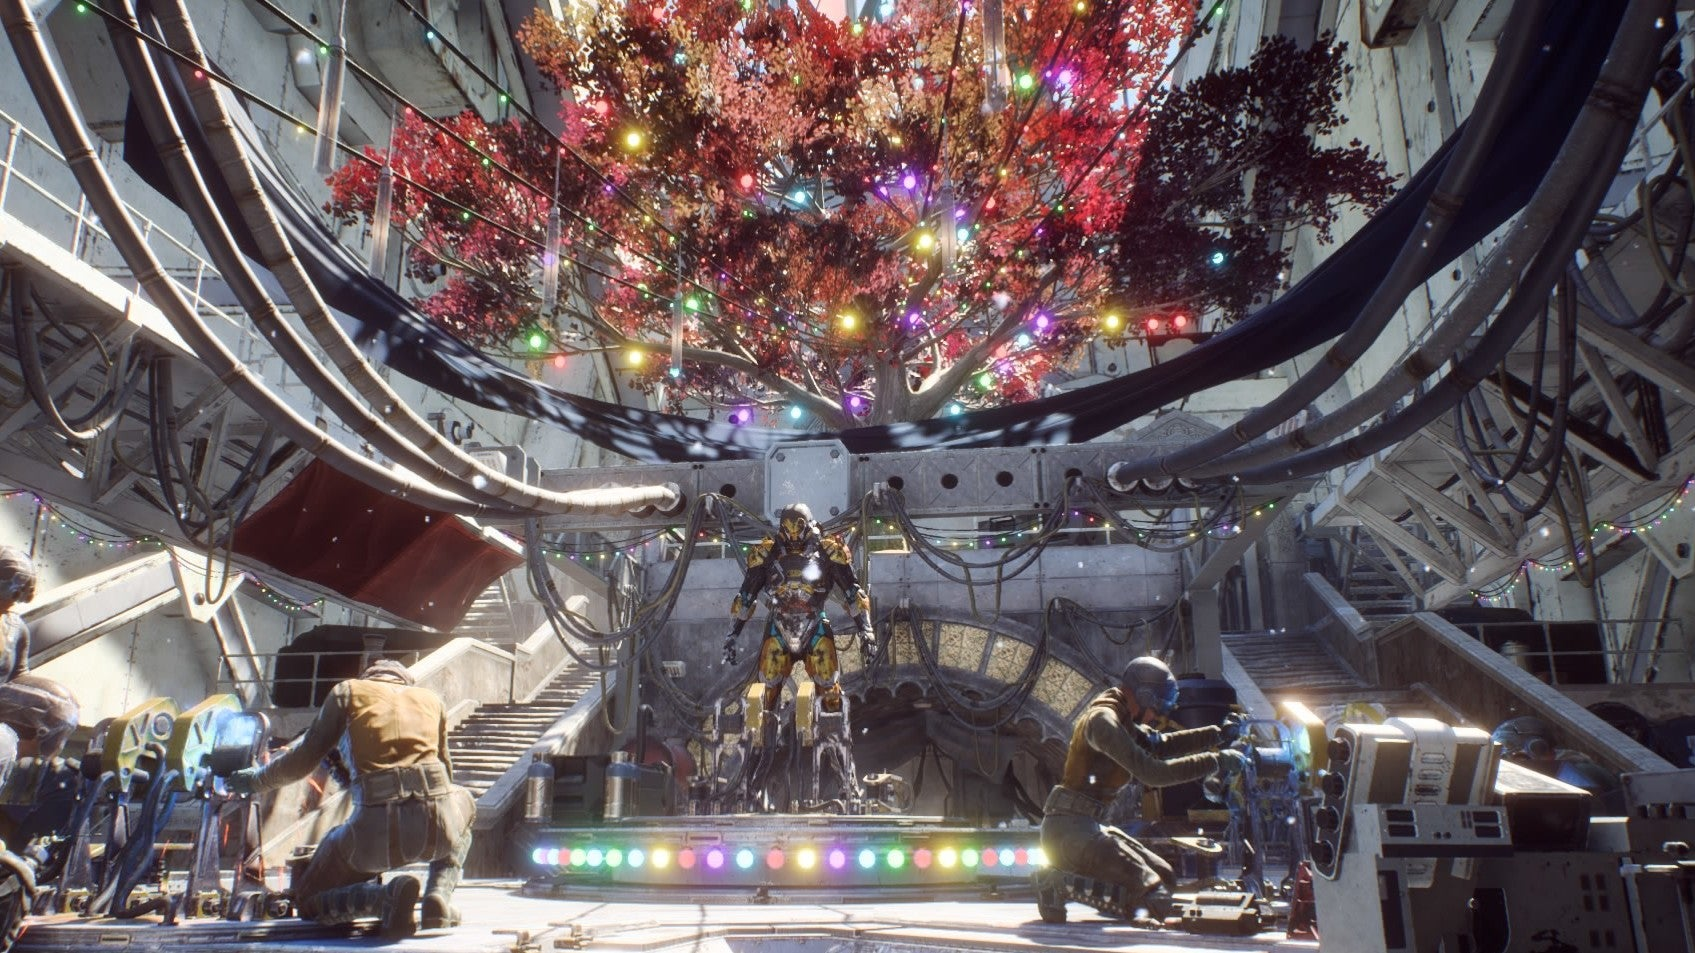 Anthem Still Hasn't Taken Down Its Christmas Decorations Either